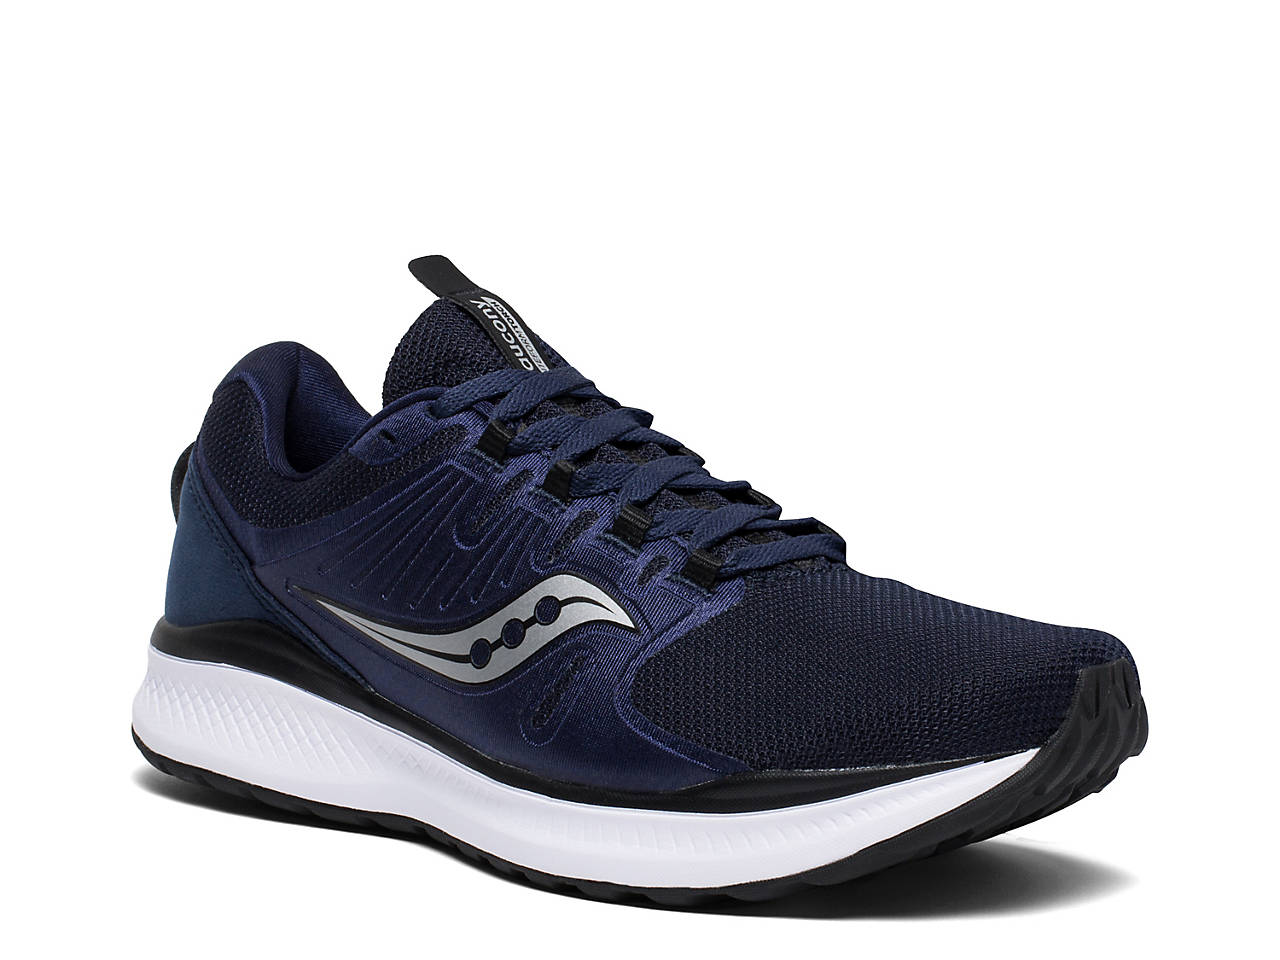 White Saucony Shoes : Saucony Men and De las mujeres Running Shoes